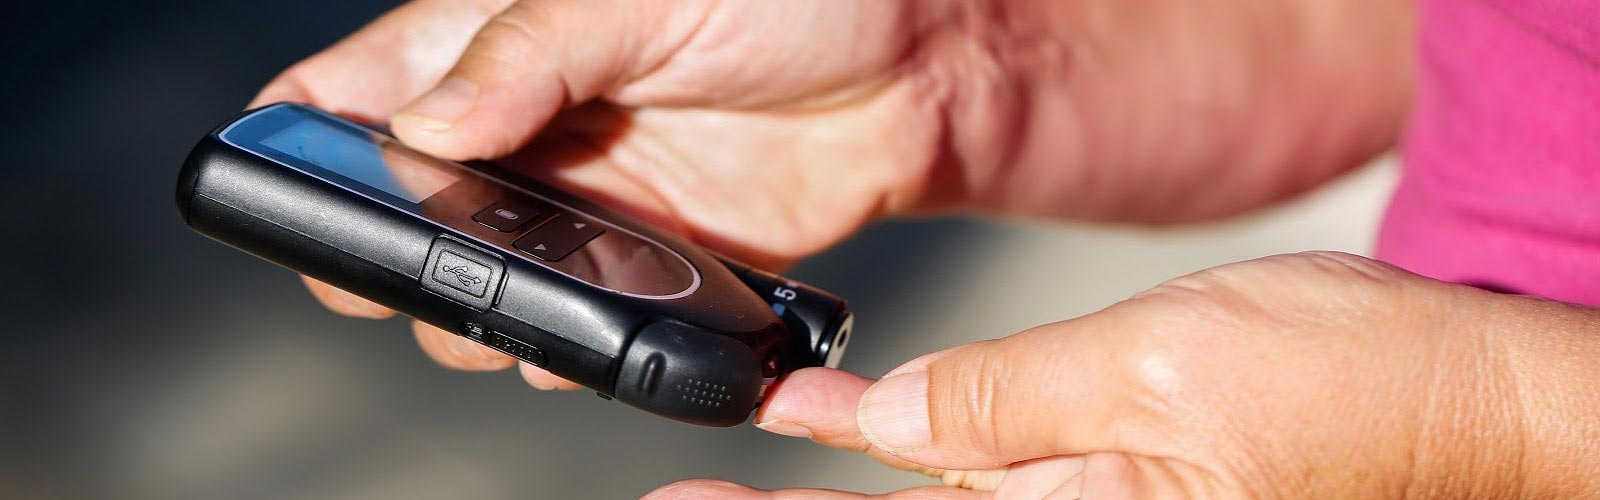 DIABETES AND COMPLICATIONS